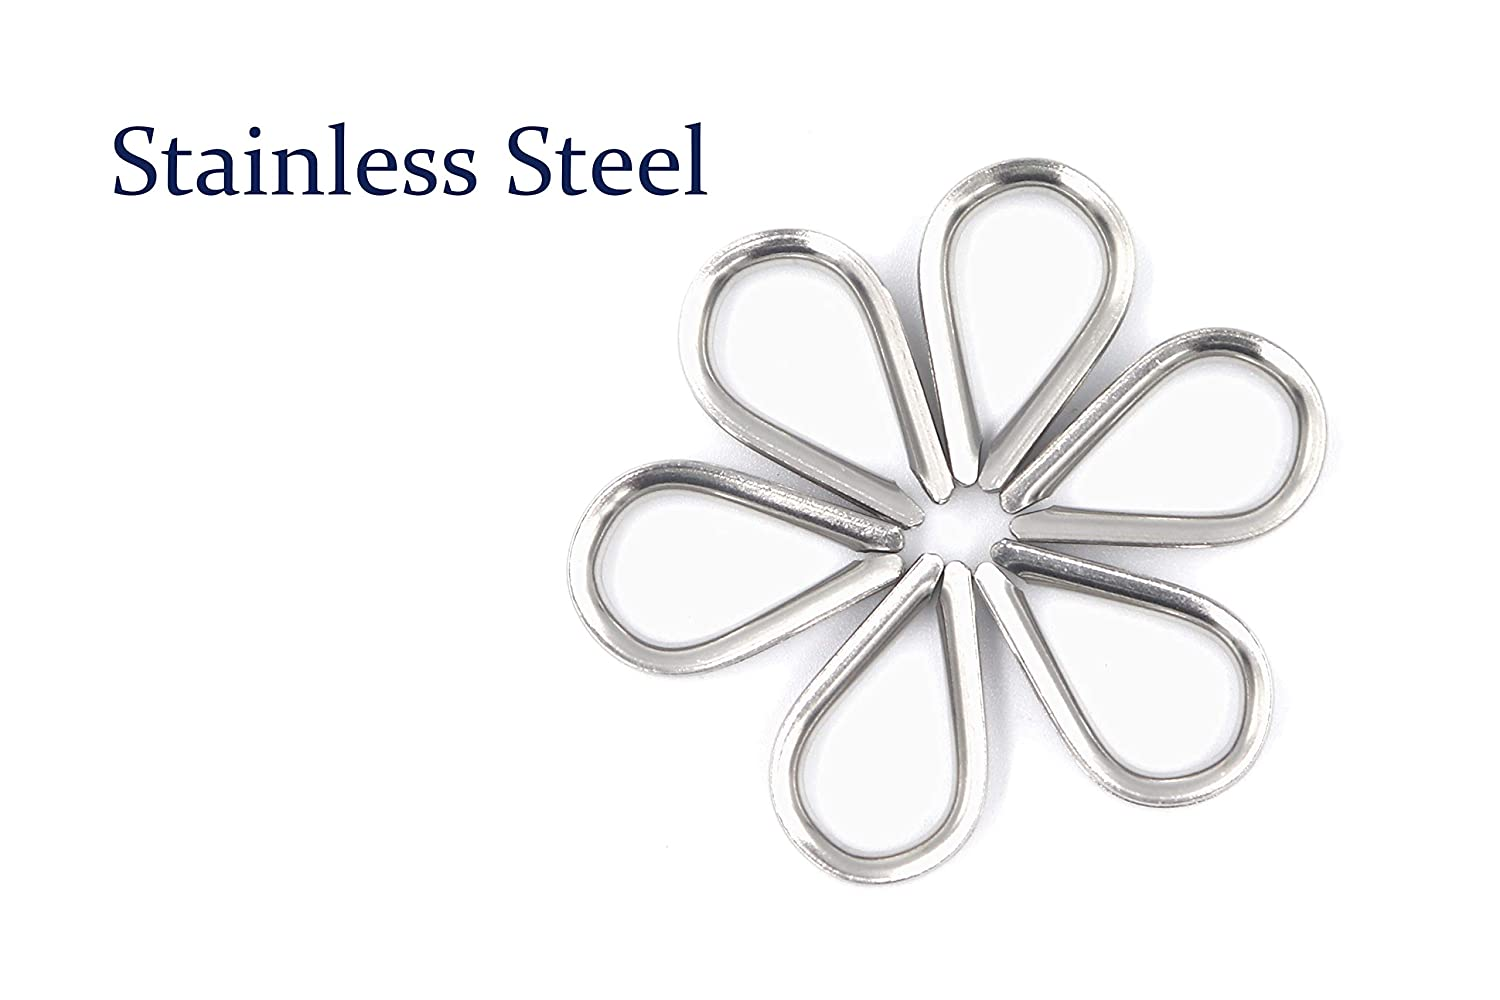 FGen 40pcs 304 Stainless Steel Rigging Hardware M2-24MM Steel Wire Rope Ring Triangle Ring Boast Protection